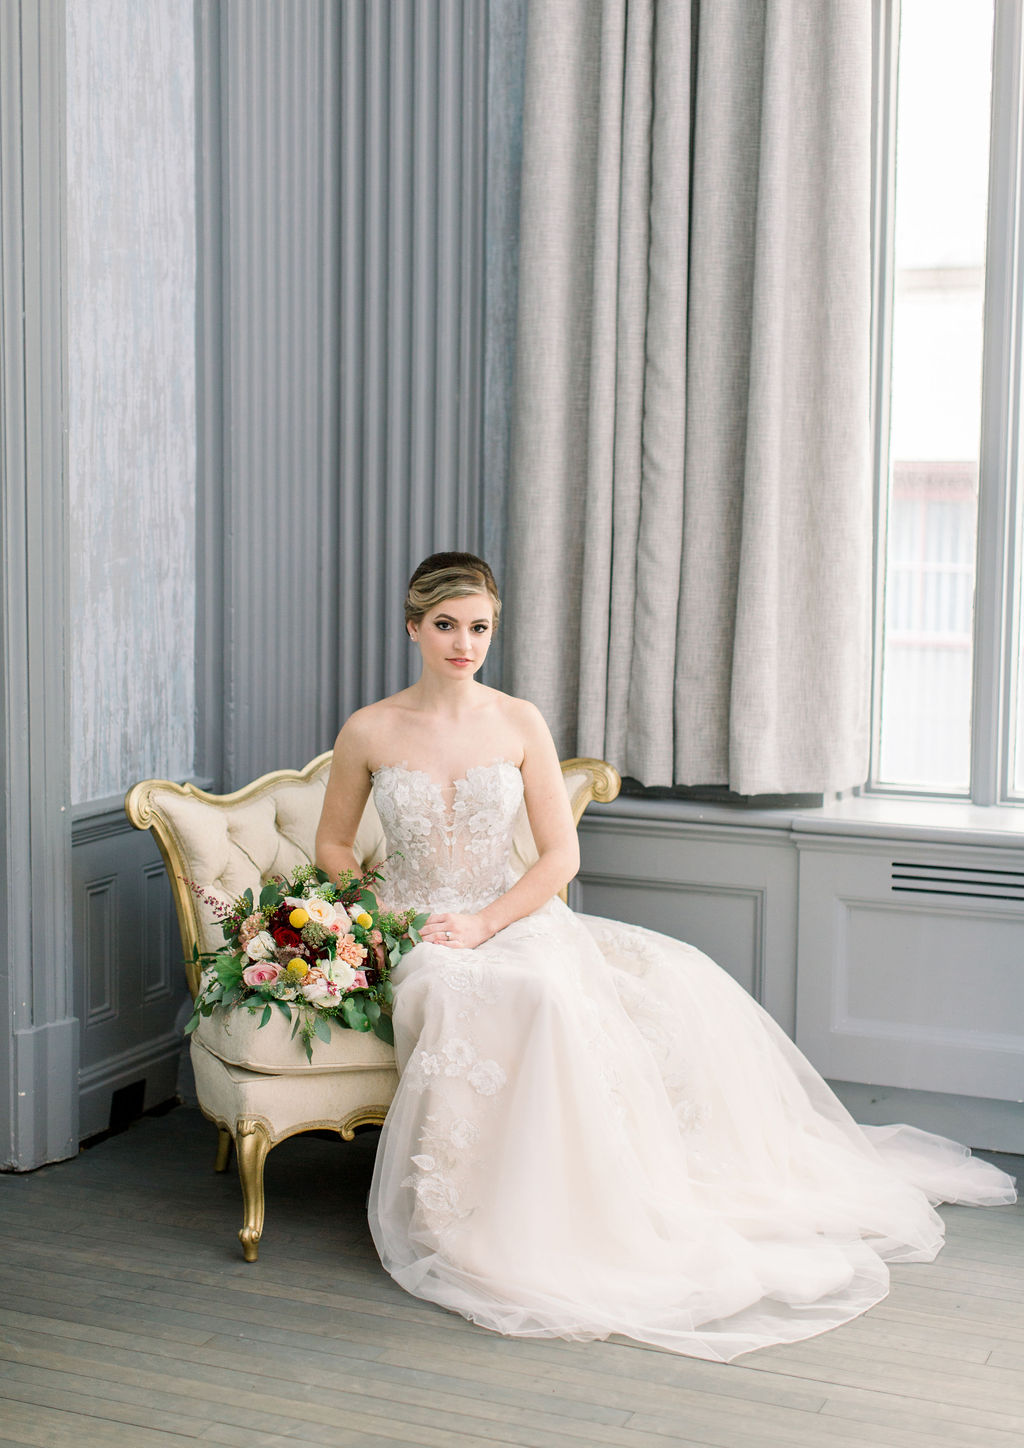 Sincerity Bridal - Sincerity Bridal embodies the graceful princess with a slight hint of edge. Sincerity is perfect for the budget conscious bride, with styles ranging in price from $898-$1,298.Photo by Chelsea Saxby PhotographyLocation: The Wilder RoomRentals: Something Borrowed RentalsShoot Coordination: Looloo's eventsModel: Sarah LaplacaFlorals: The Flower Girl